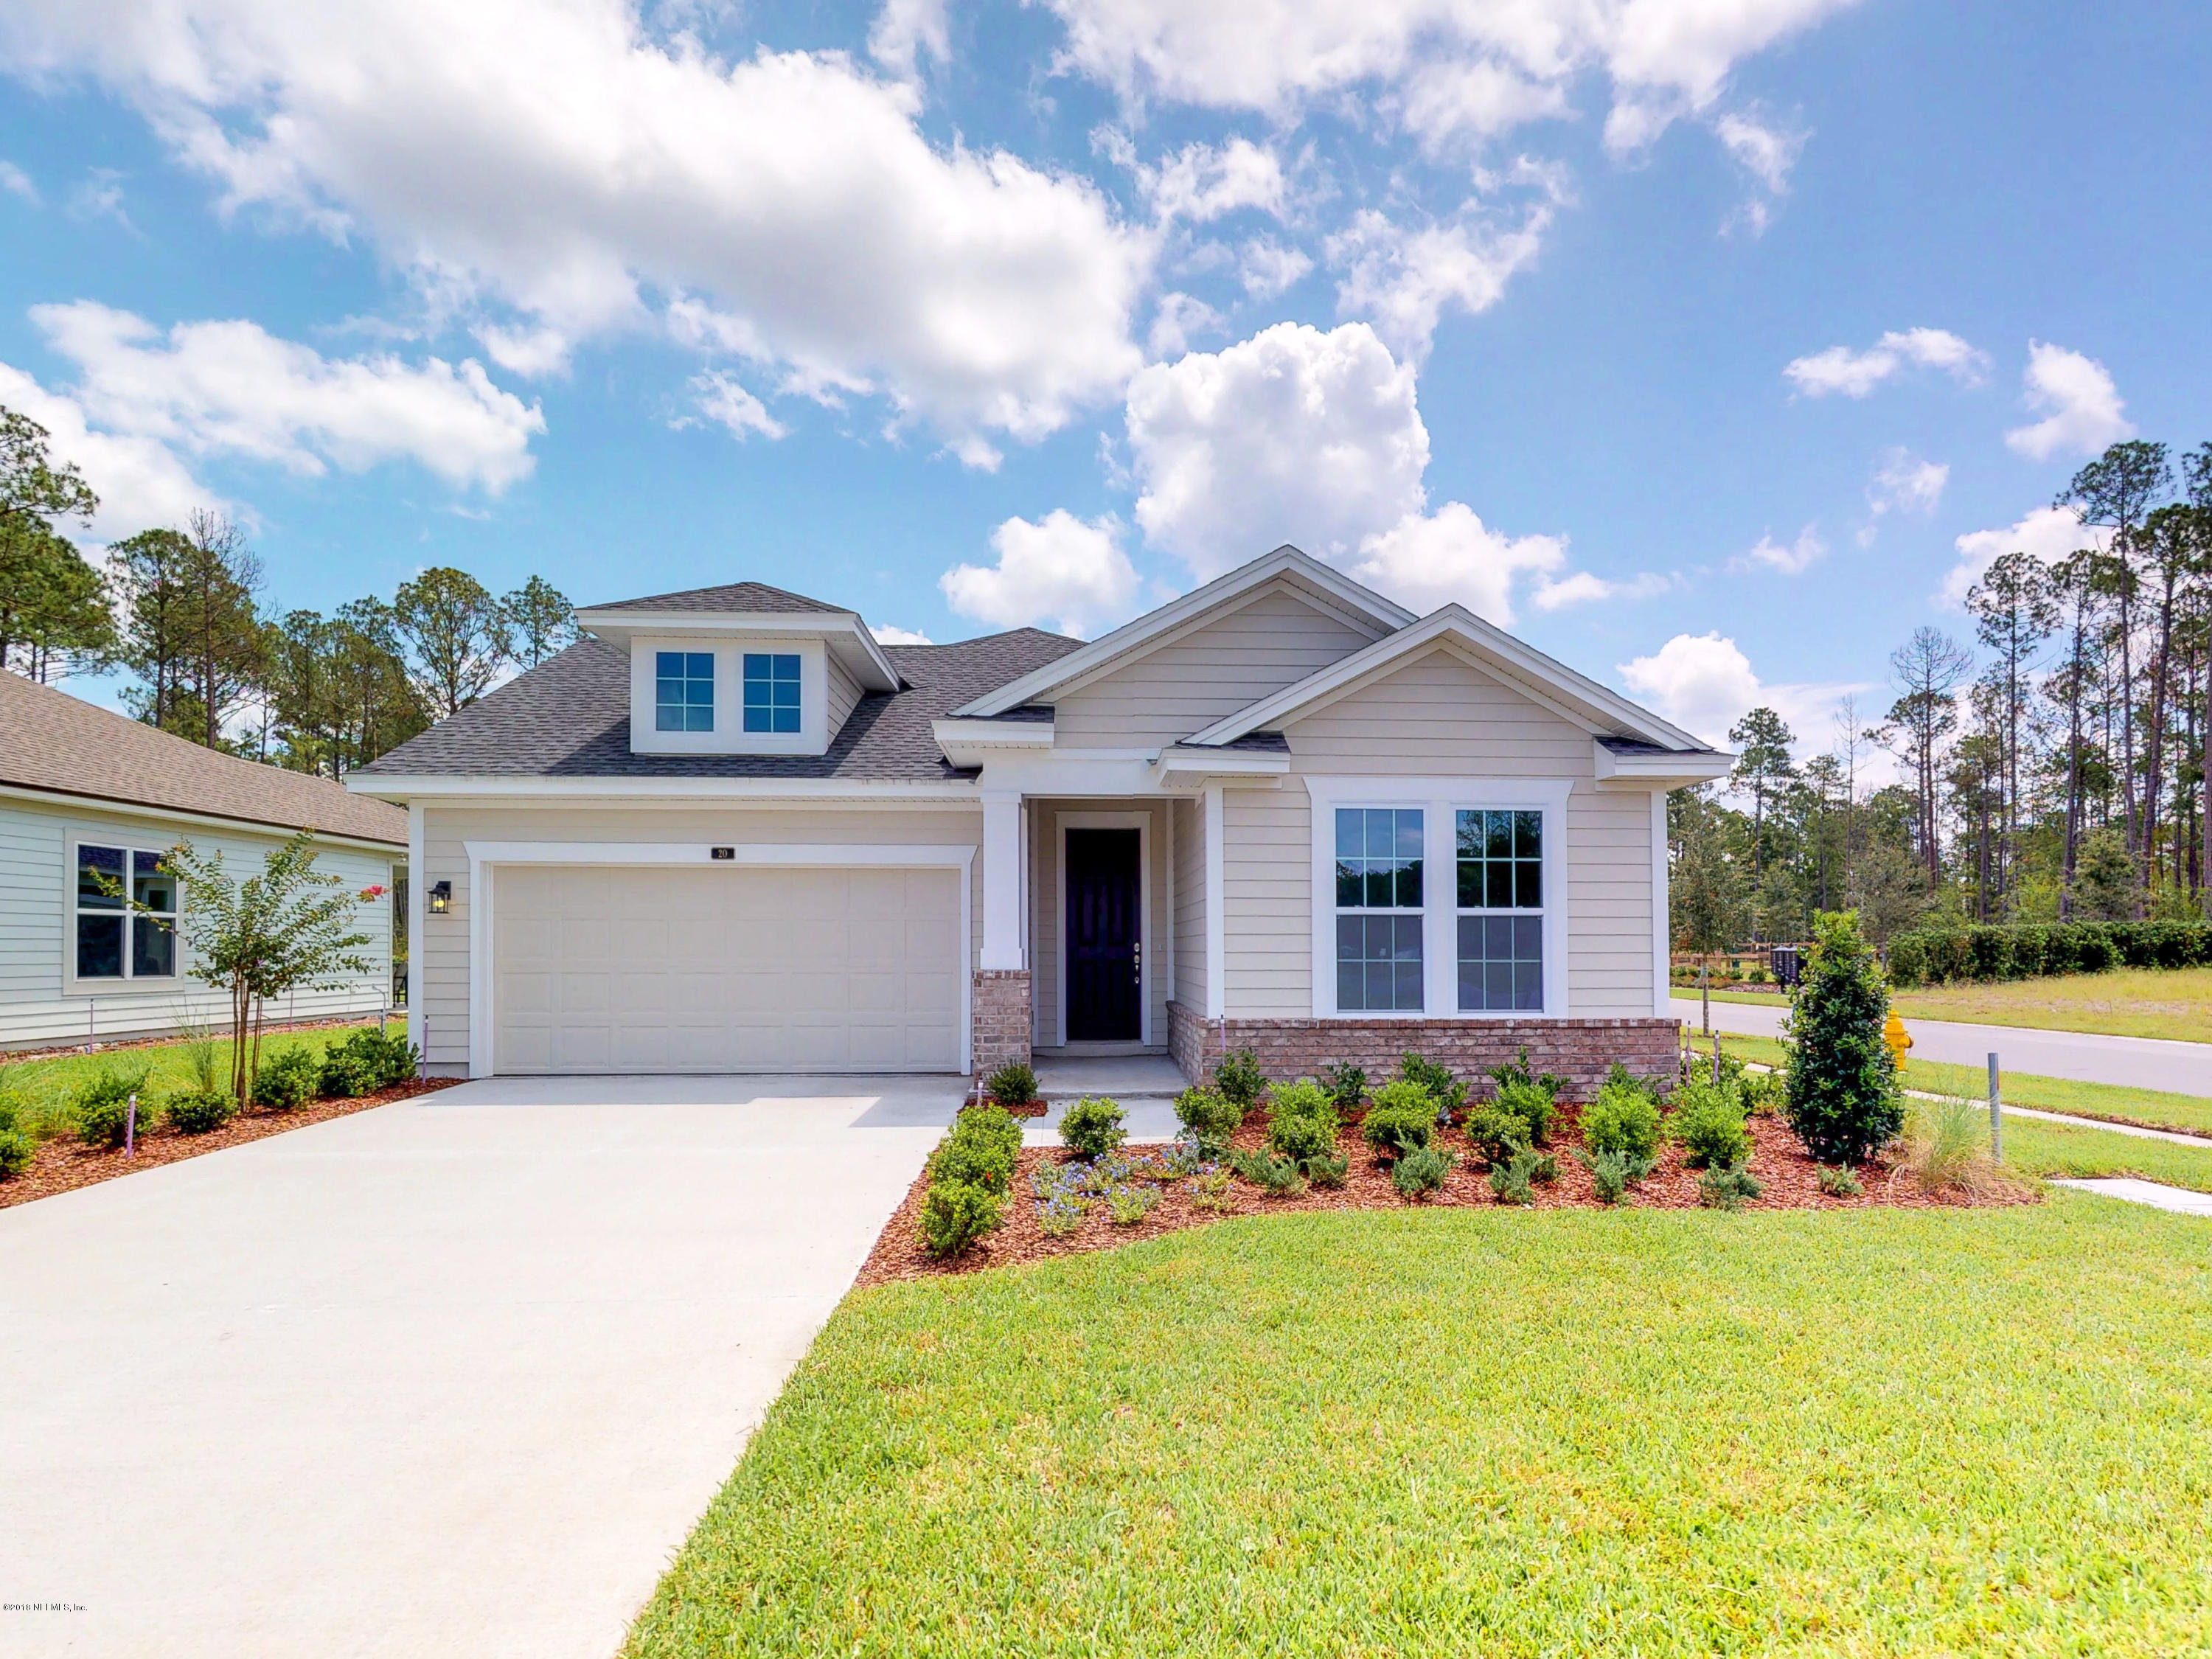 20 KNOTWOOD, PONTE VEDRA, FLORIDA 32081, 3 Bedrooms Bedrooms, ,2 BathroomsBathrooms,Residential - single family,For sale,KNOTWOOD,930544